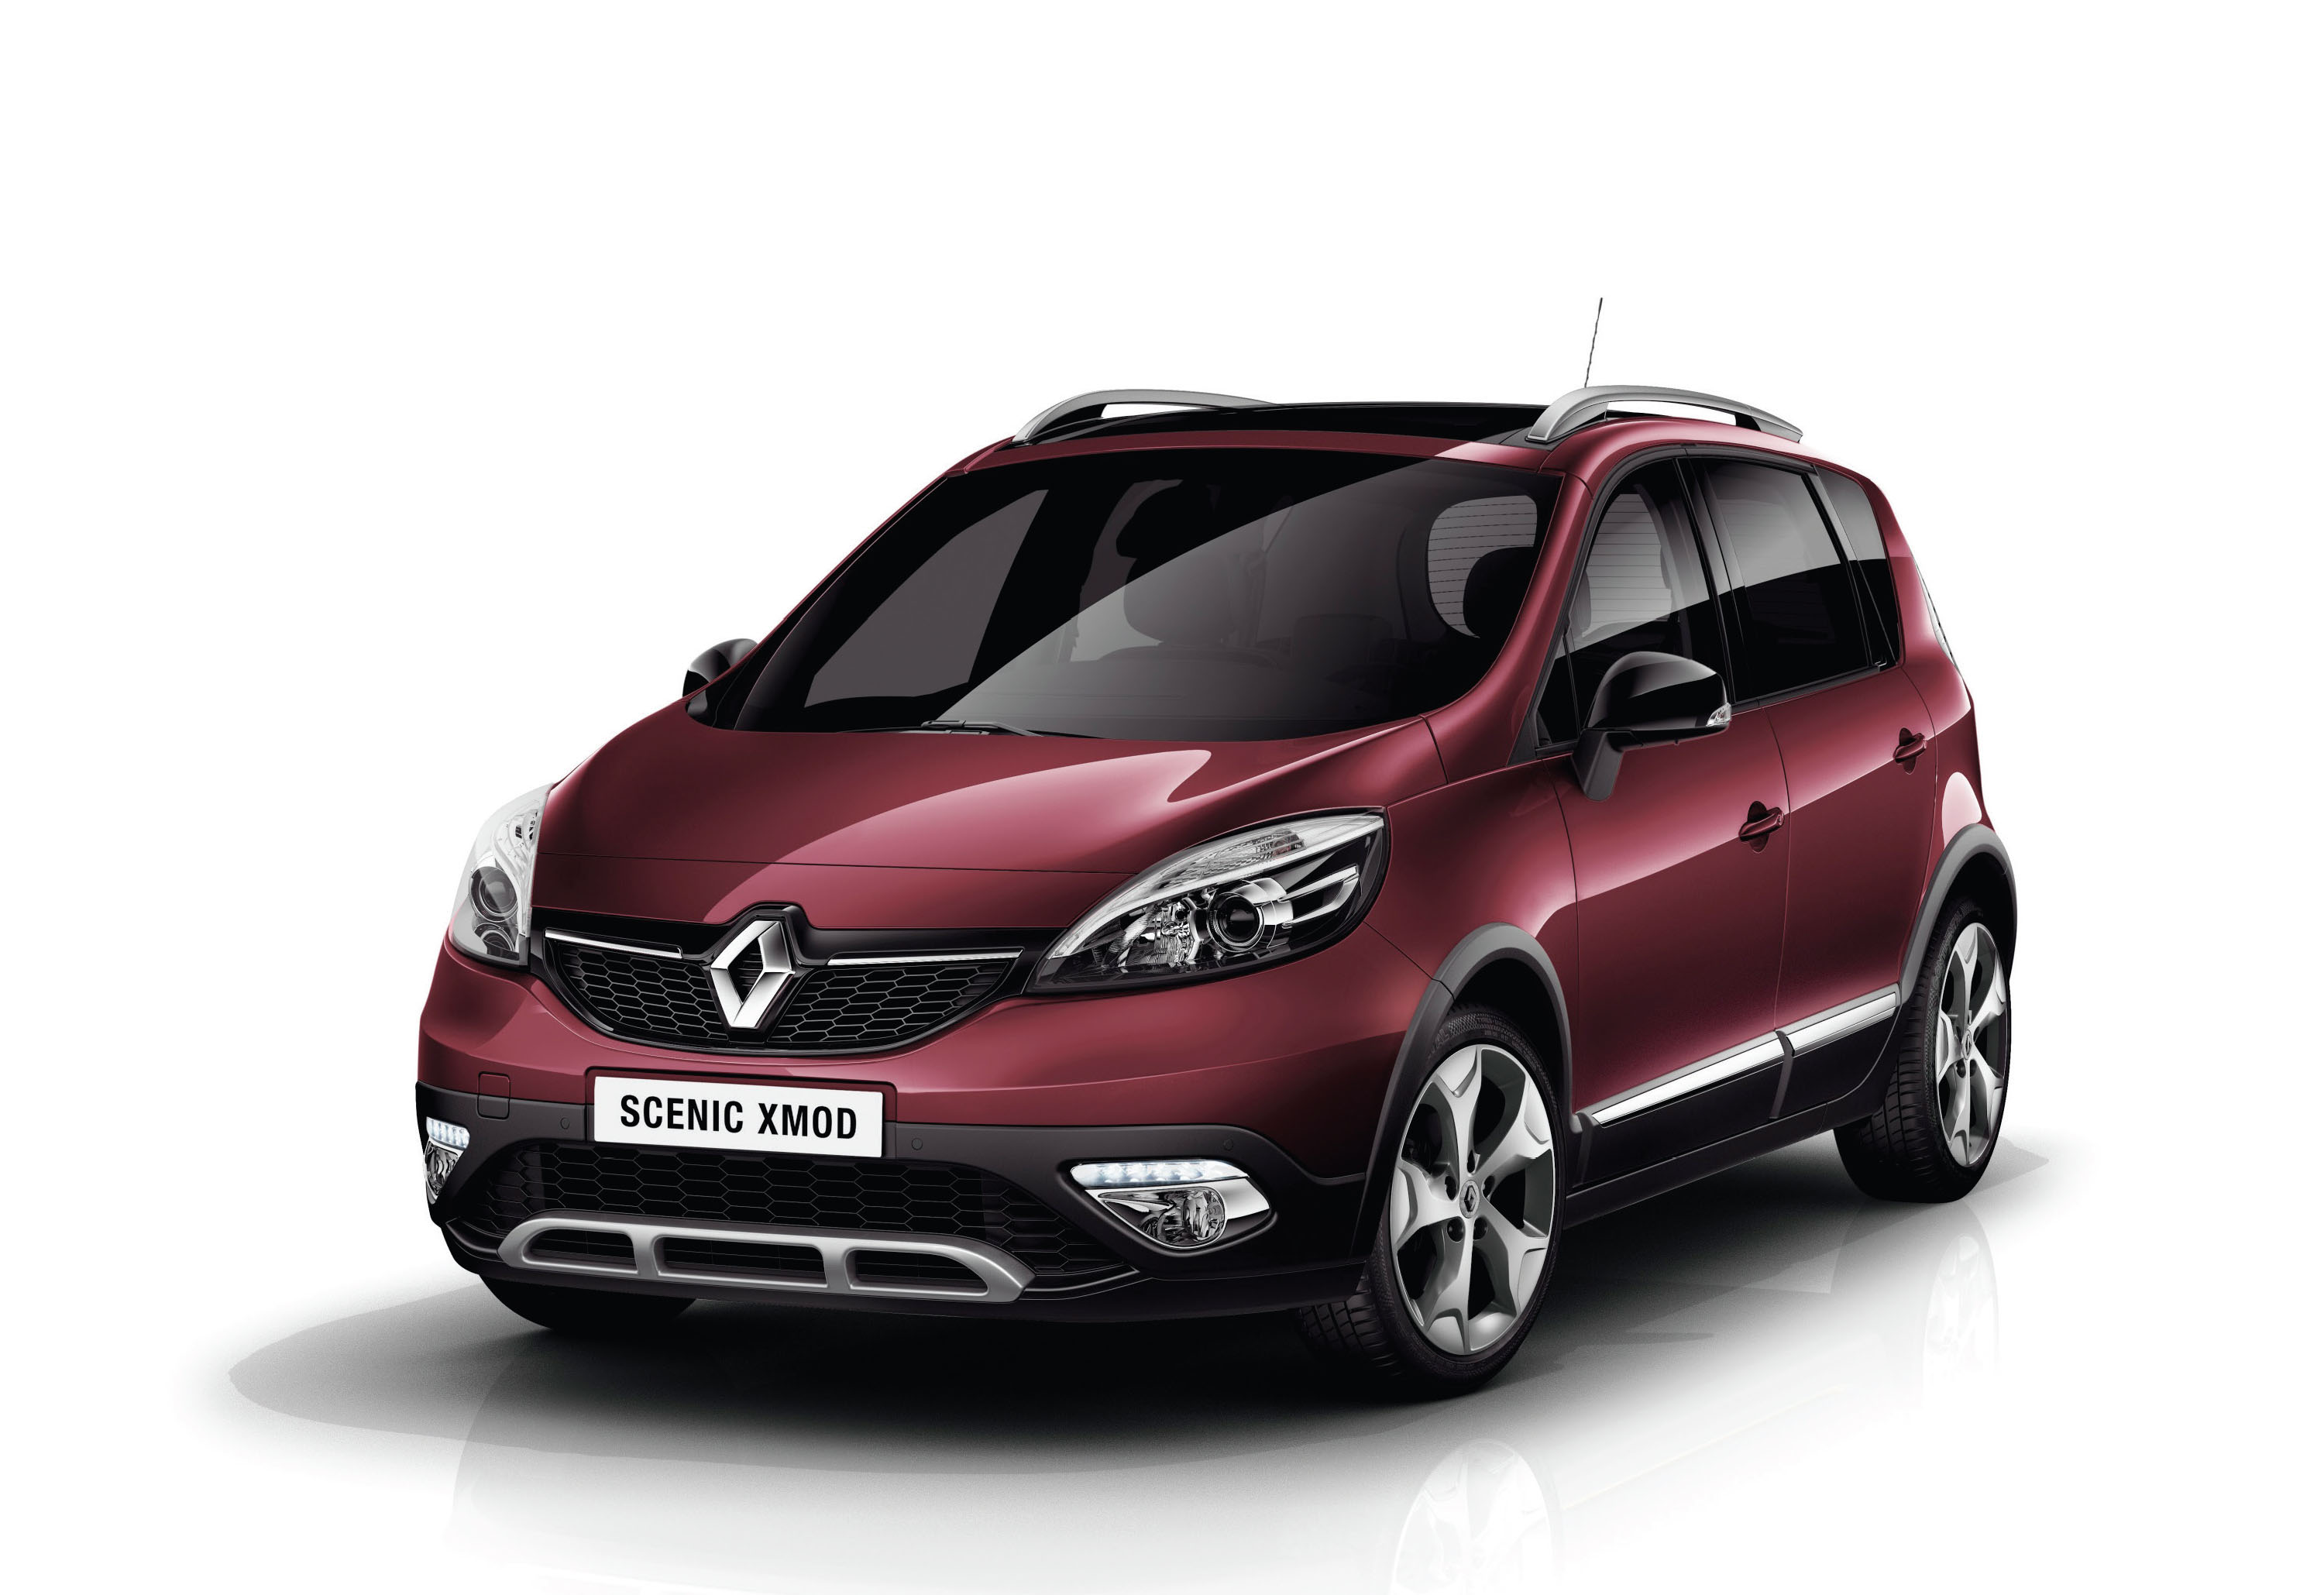 renault megane scenic 2015 images. Black Bedroom Furniture Sets. Home Design Ideas